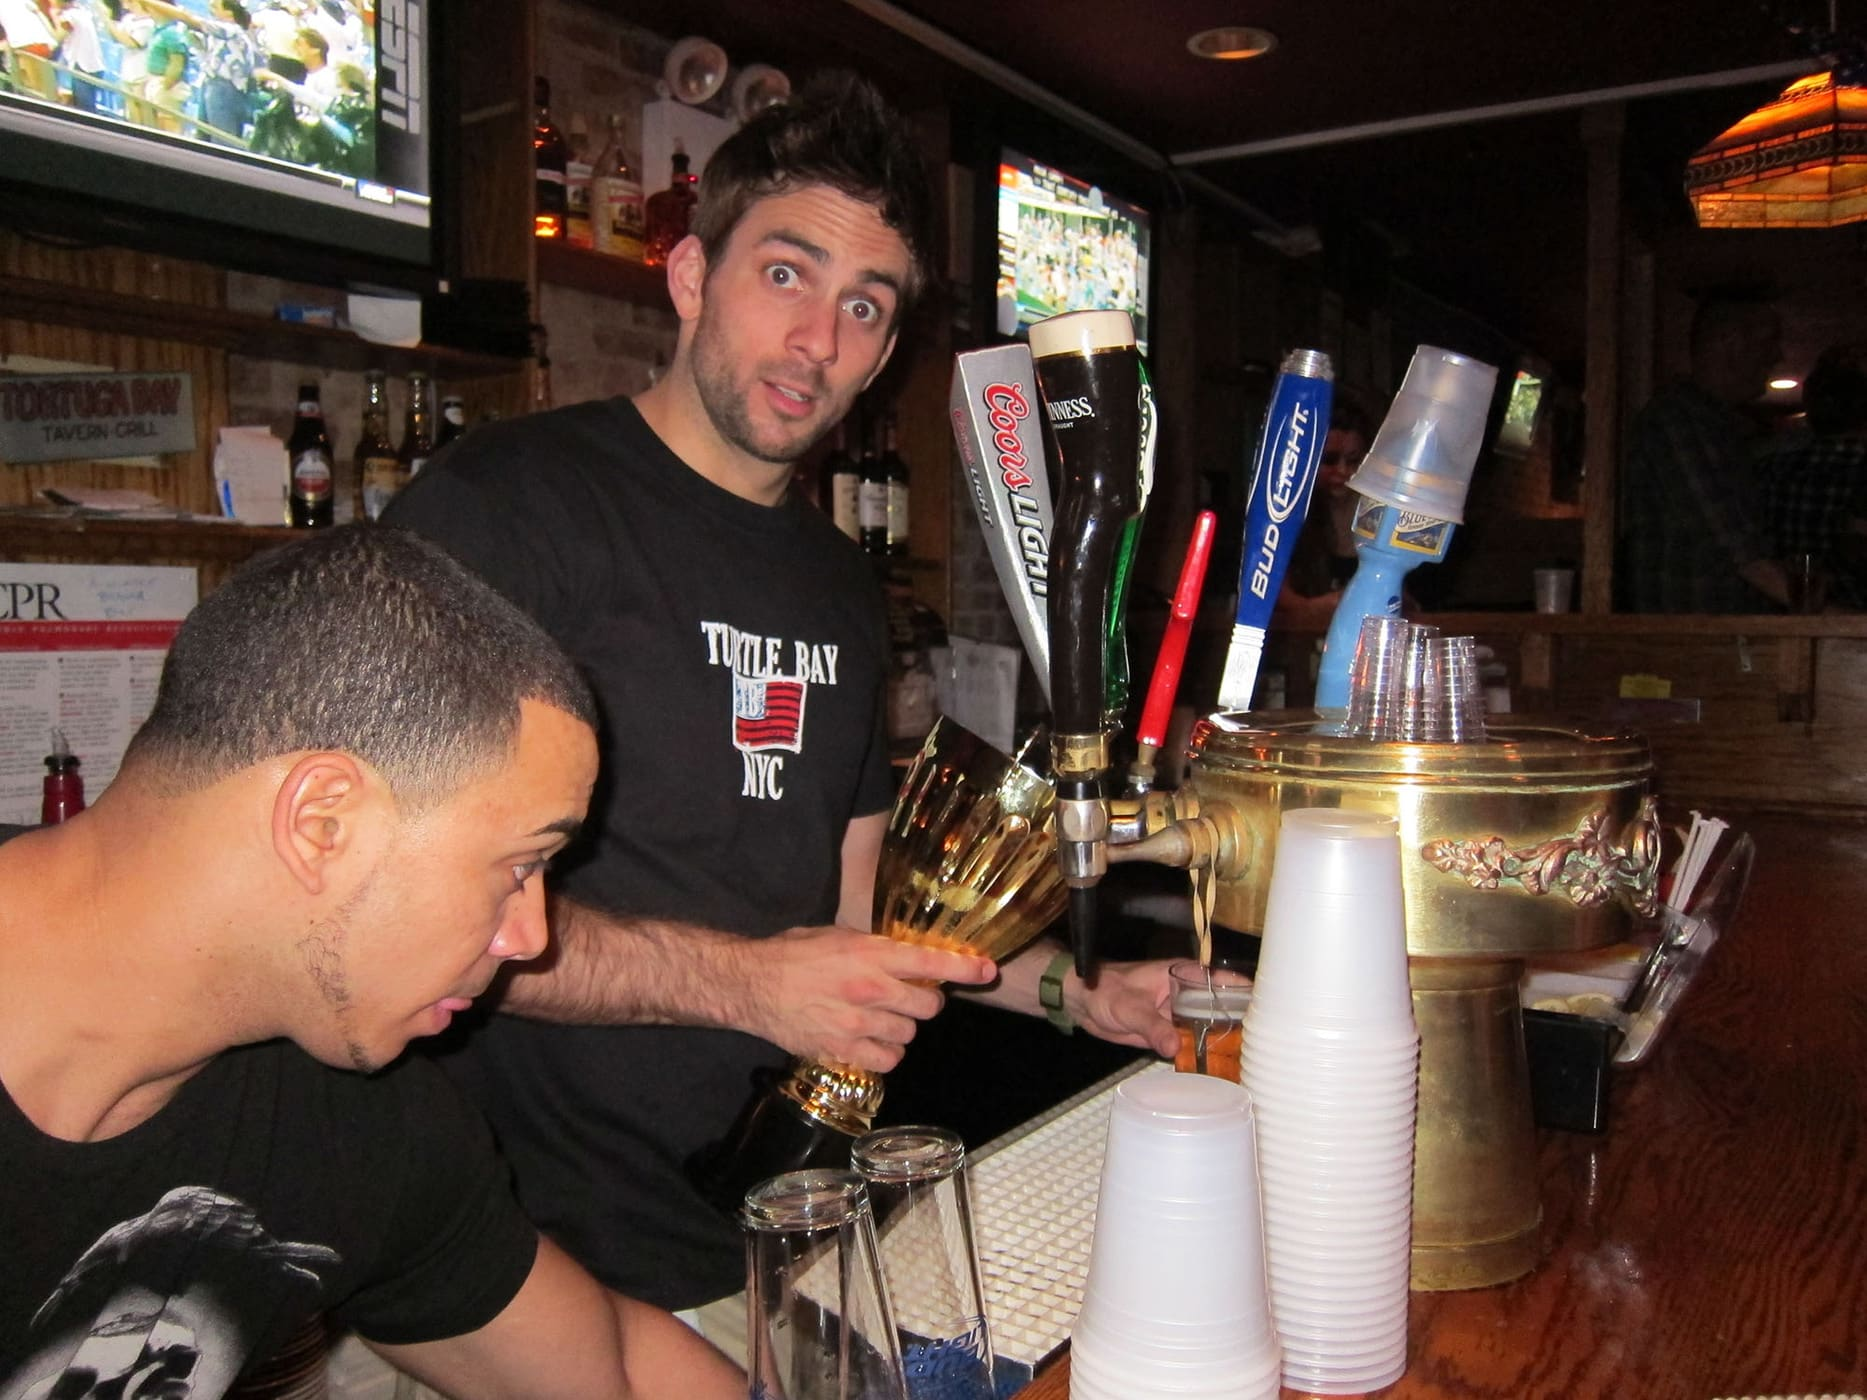 Pouring beer into the rookie of the year trophy